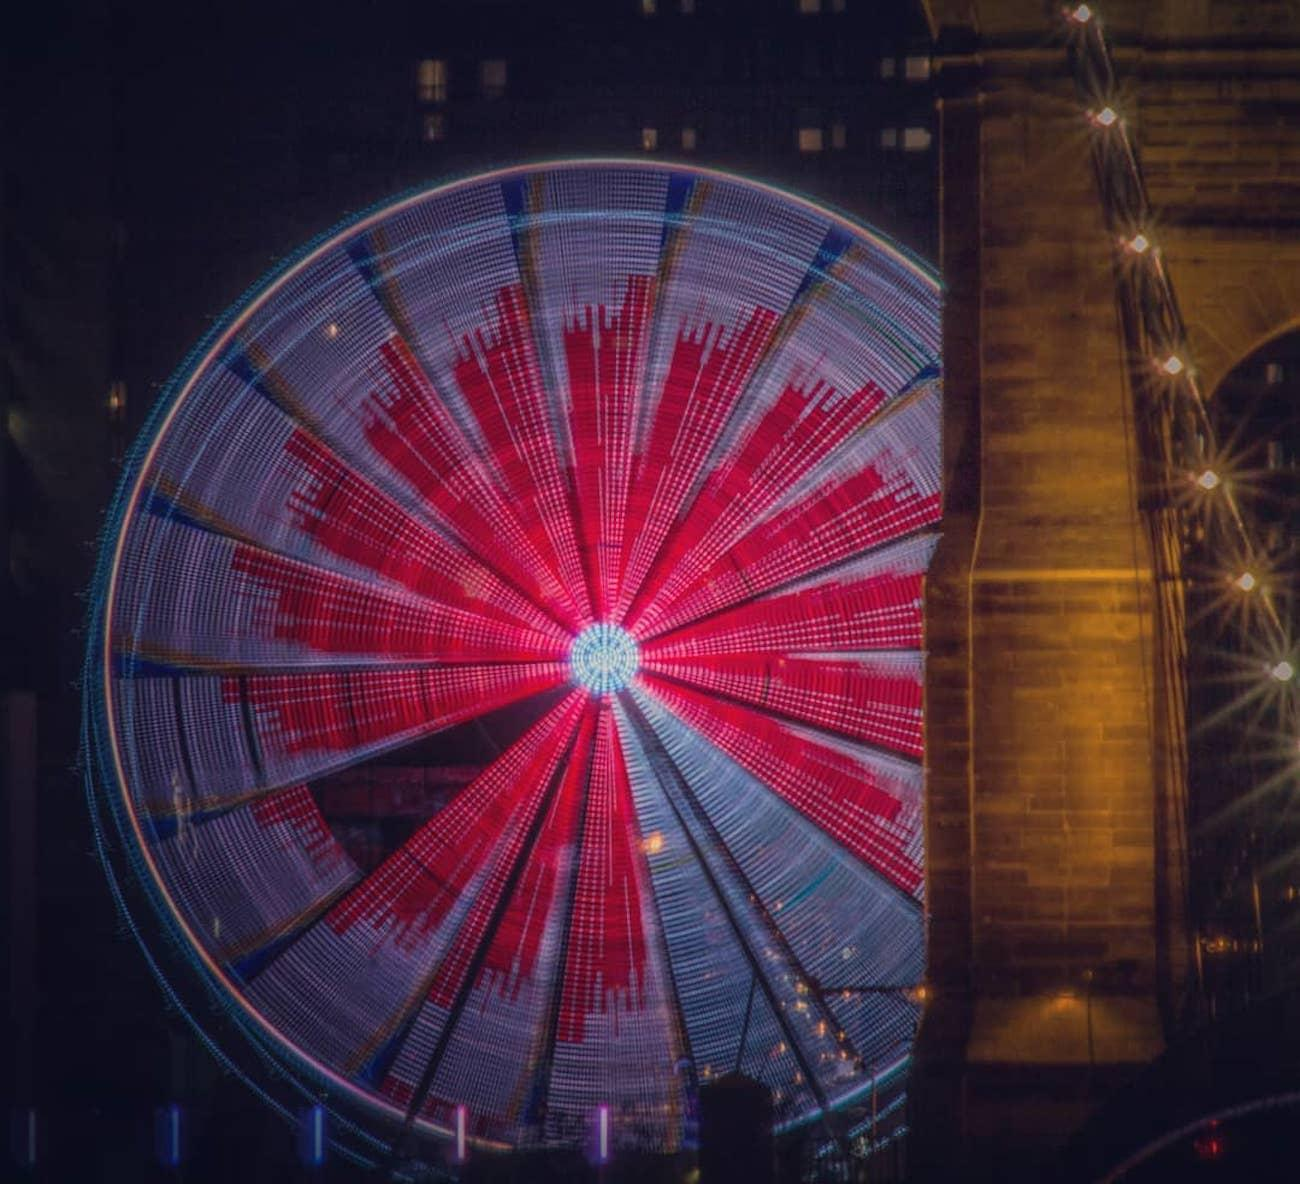 The SkyStar is the largest traveling observation wheel in the country. Guests are carried in gondolas up almost 15 stories high while overlooking the Ohio River. The 36 carriers are climate-controlled and can hold up to six people. The magnificent structure will only call The Banks its home through December 2nd before it's packed up and rolled to a new city. SkyStar runs daily, and tickets are $12.50. ADDRESS: 55 East Freedom Way (45202) / Image courtesy of Instagram user @tevi23 // Published 9.12.18<br>